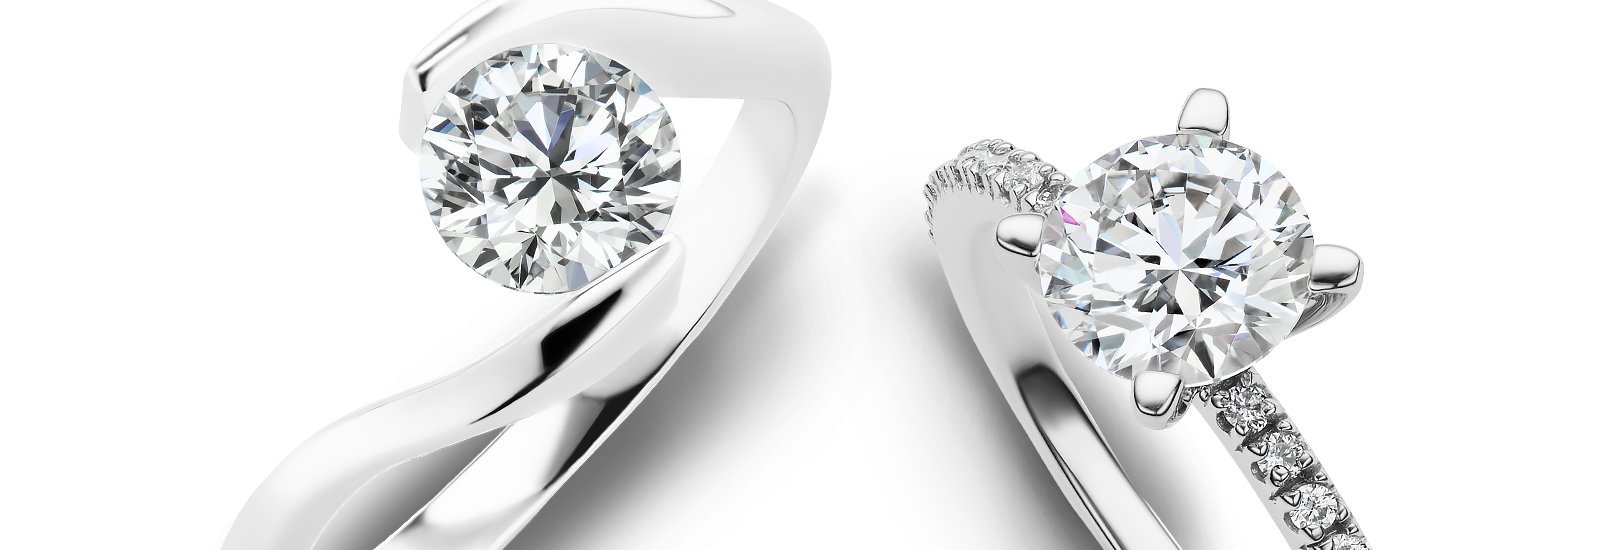 round cut engagement rings on a white background